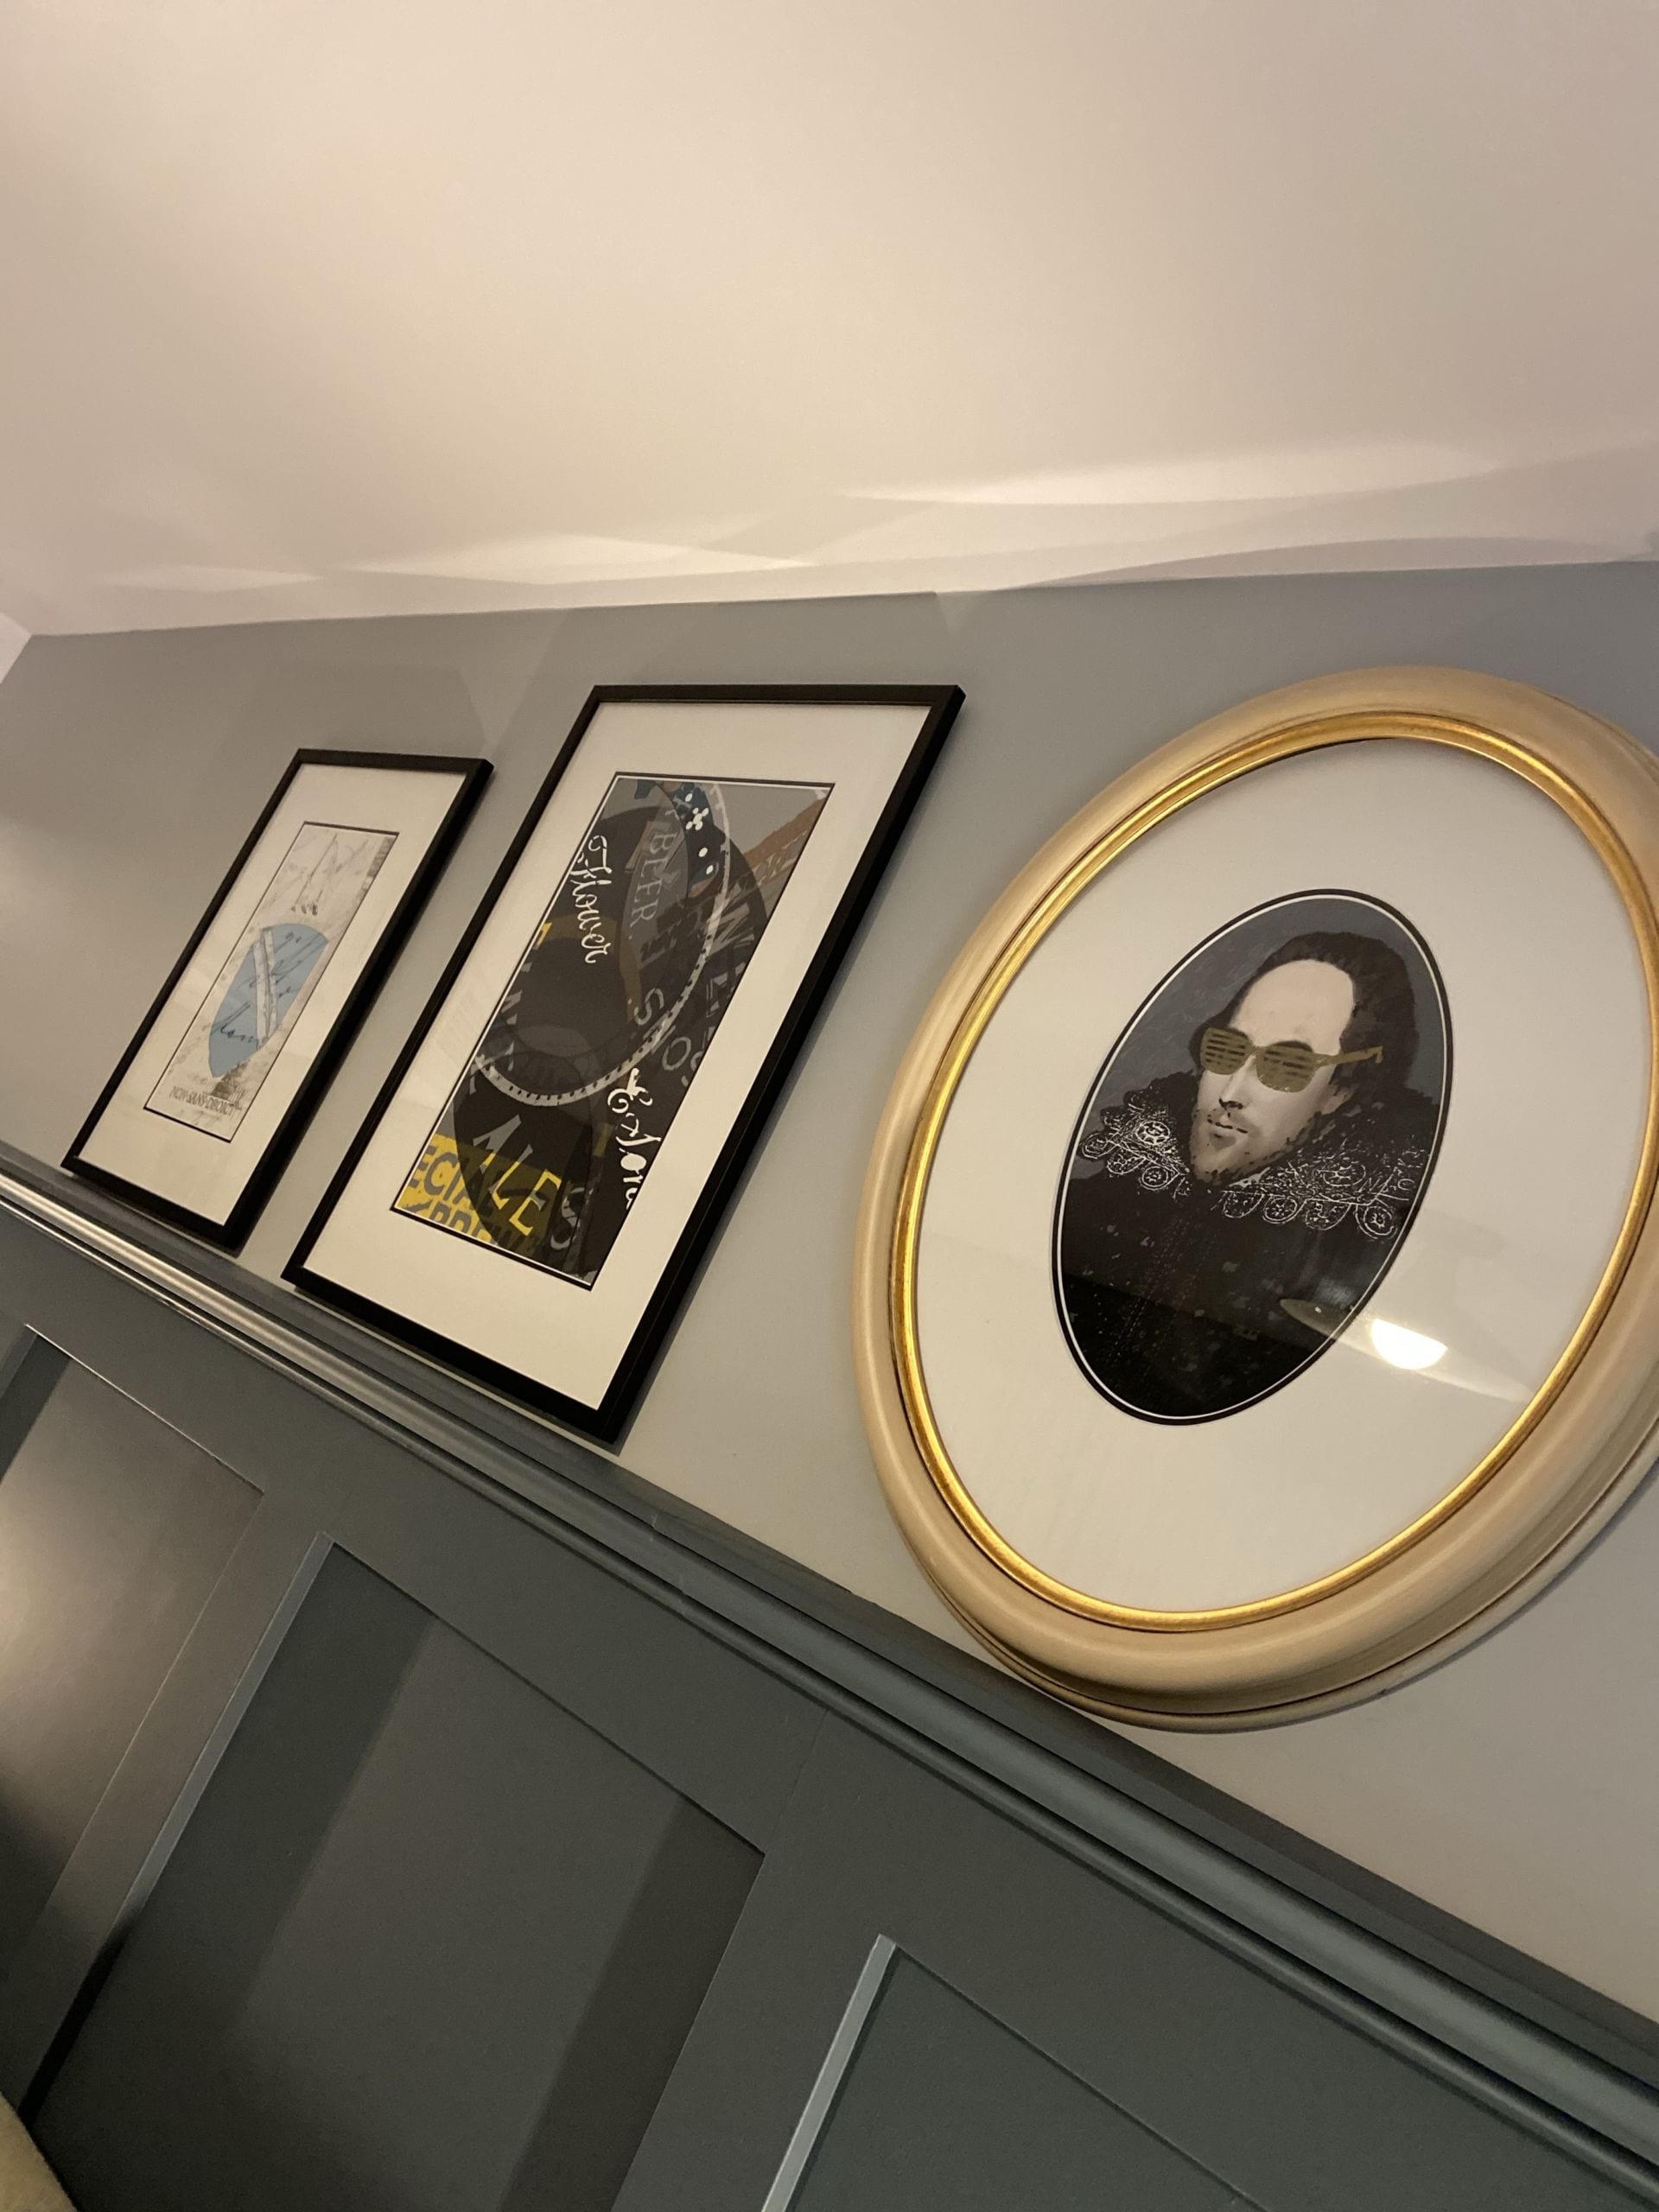 Picture Frames with Shakespeare